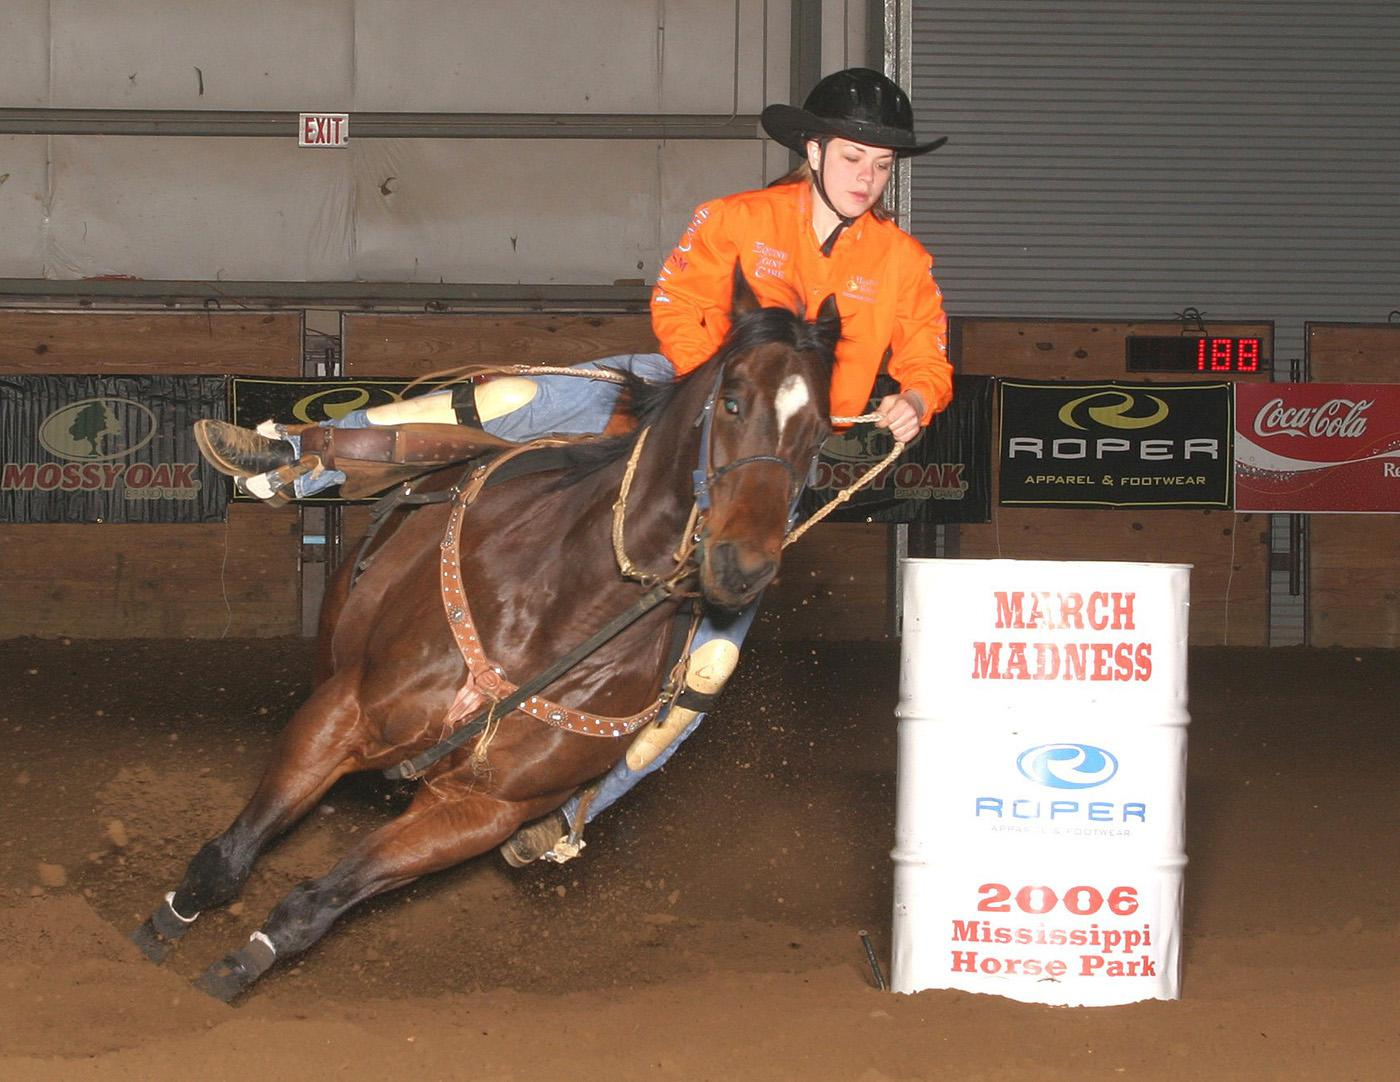 Kass Downen, an 11th grader from Illinois, makes a turn around a barrel at the March Madness Barrel Race held this spring at the Mississippi Horse Park in Starkville. Downen was this year's average champion and won $3,585 with four runs totaling less than a minute.